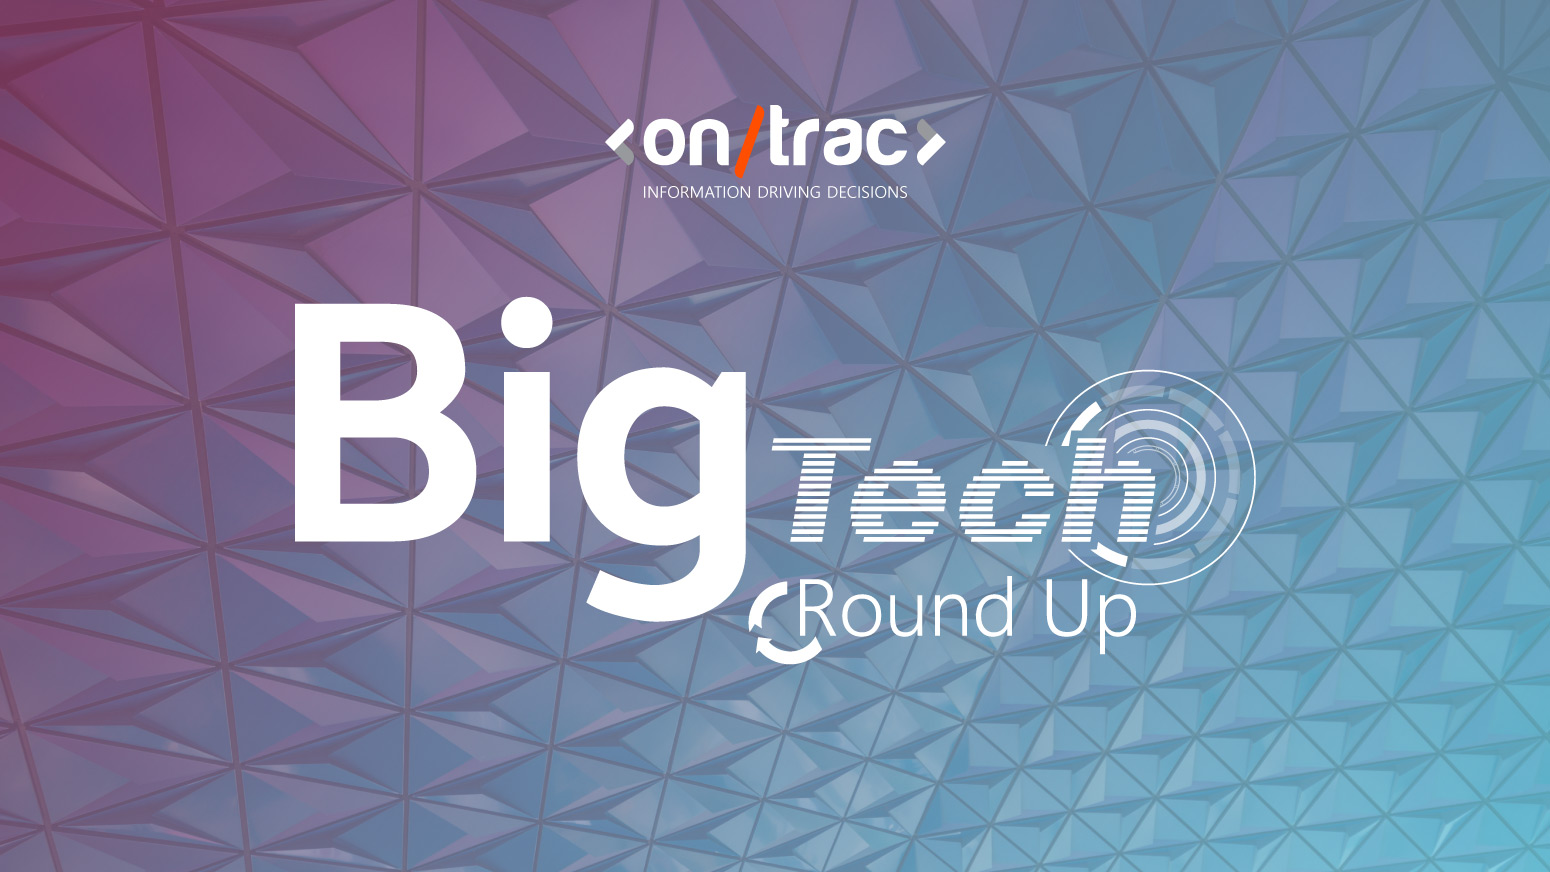 A picture of an abstract ceiling with text overlayed saying 'Big Tech Round Up'